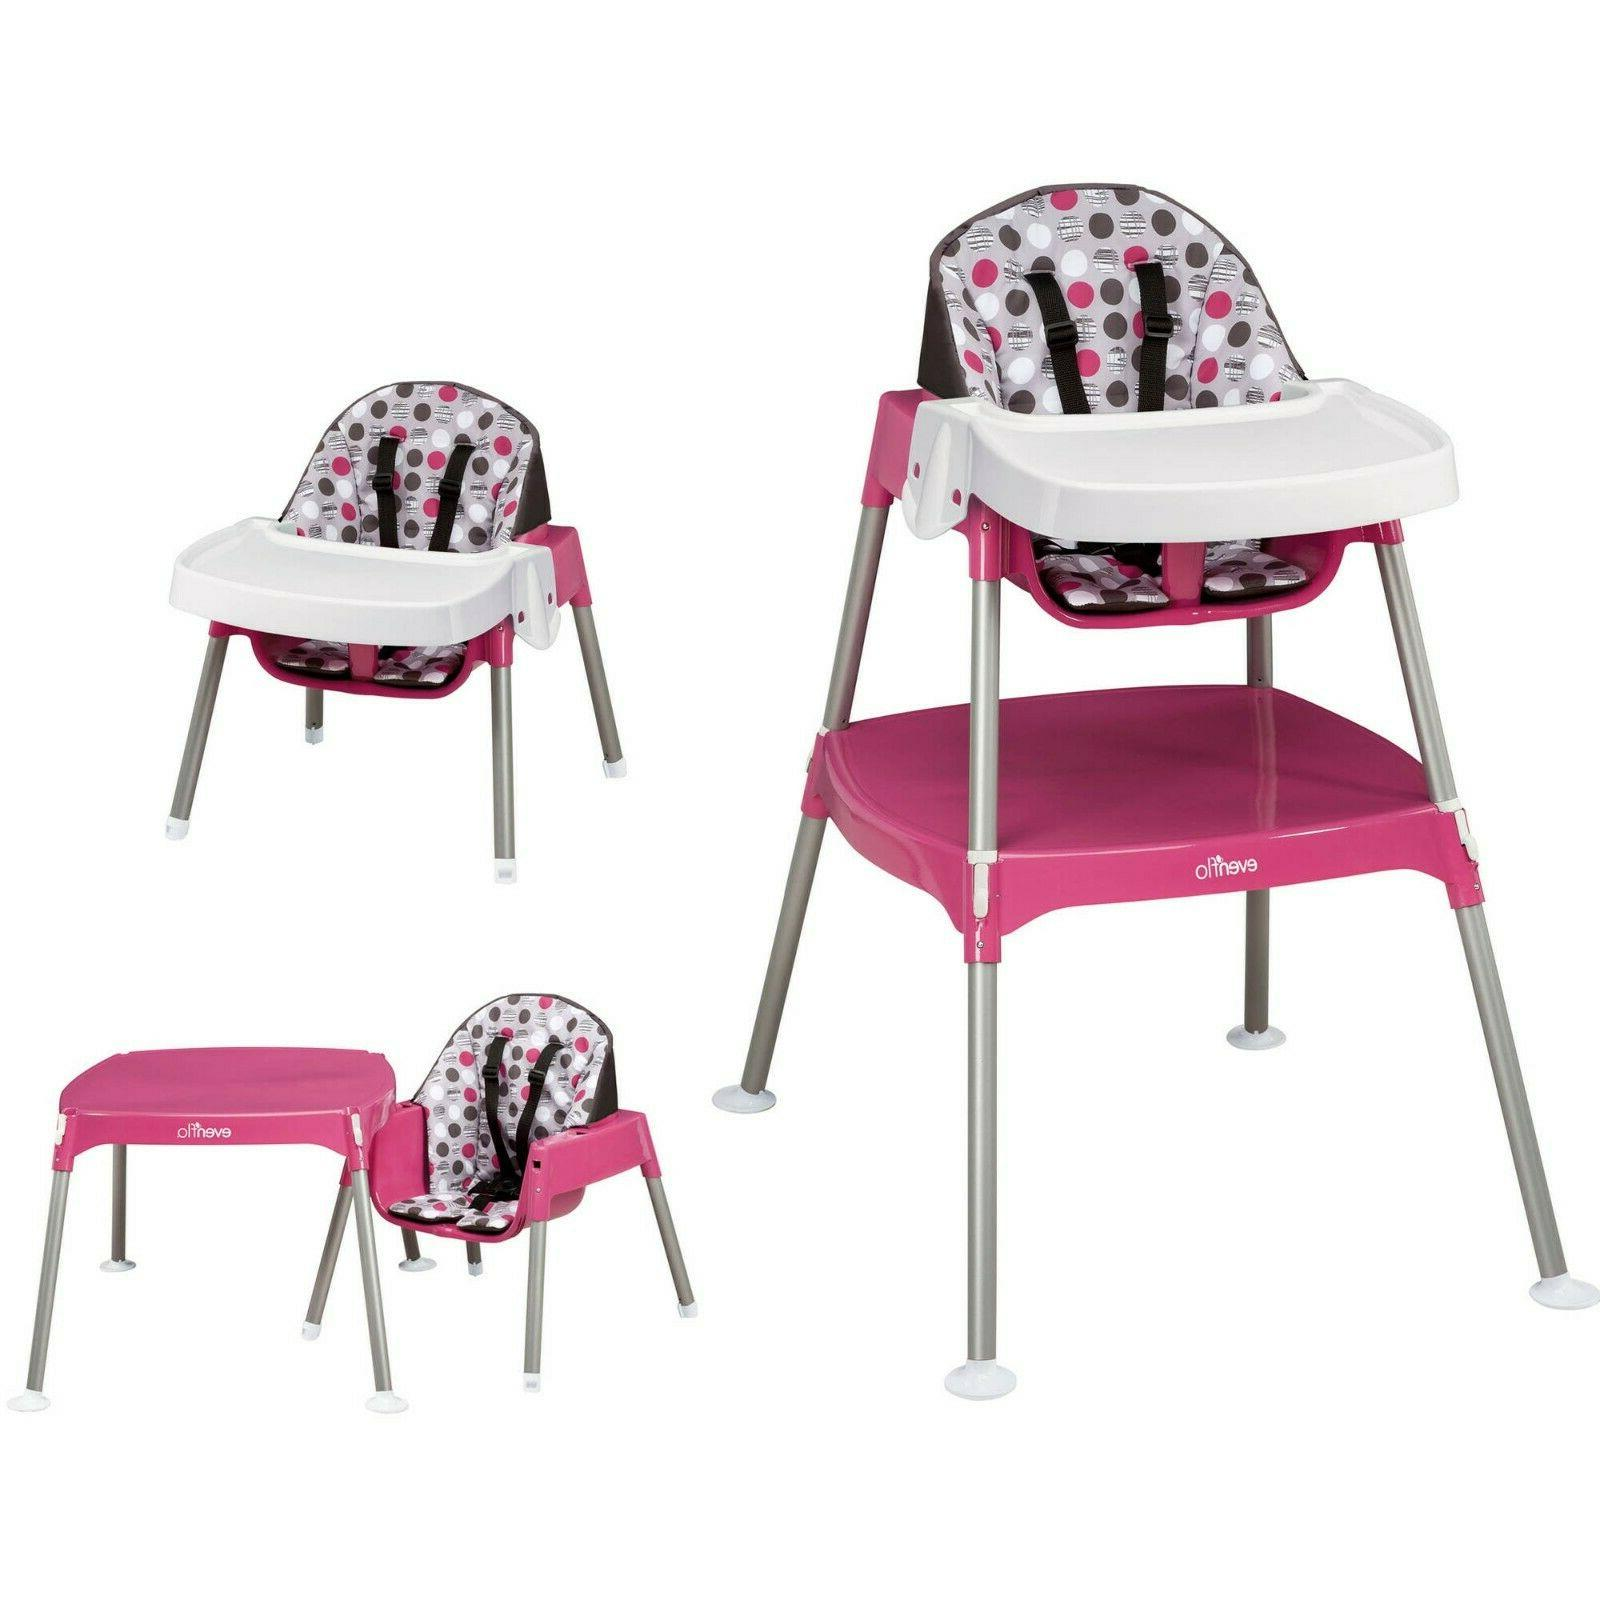 new 3 in 1 convertible high chair